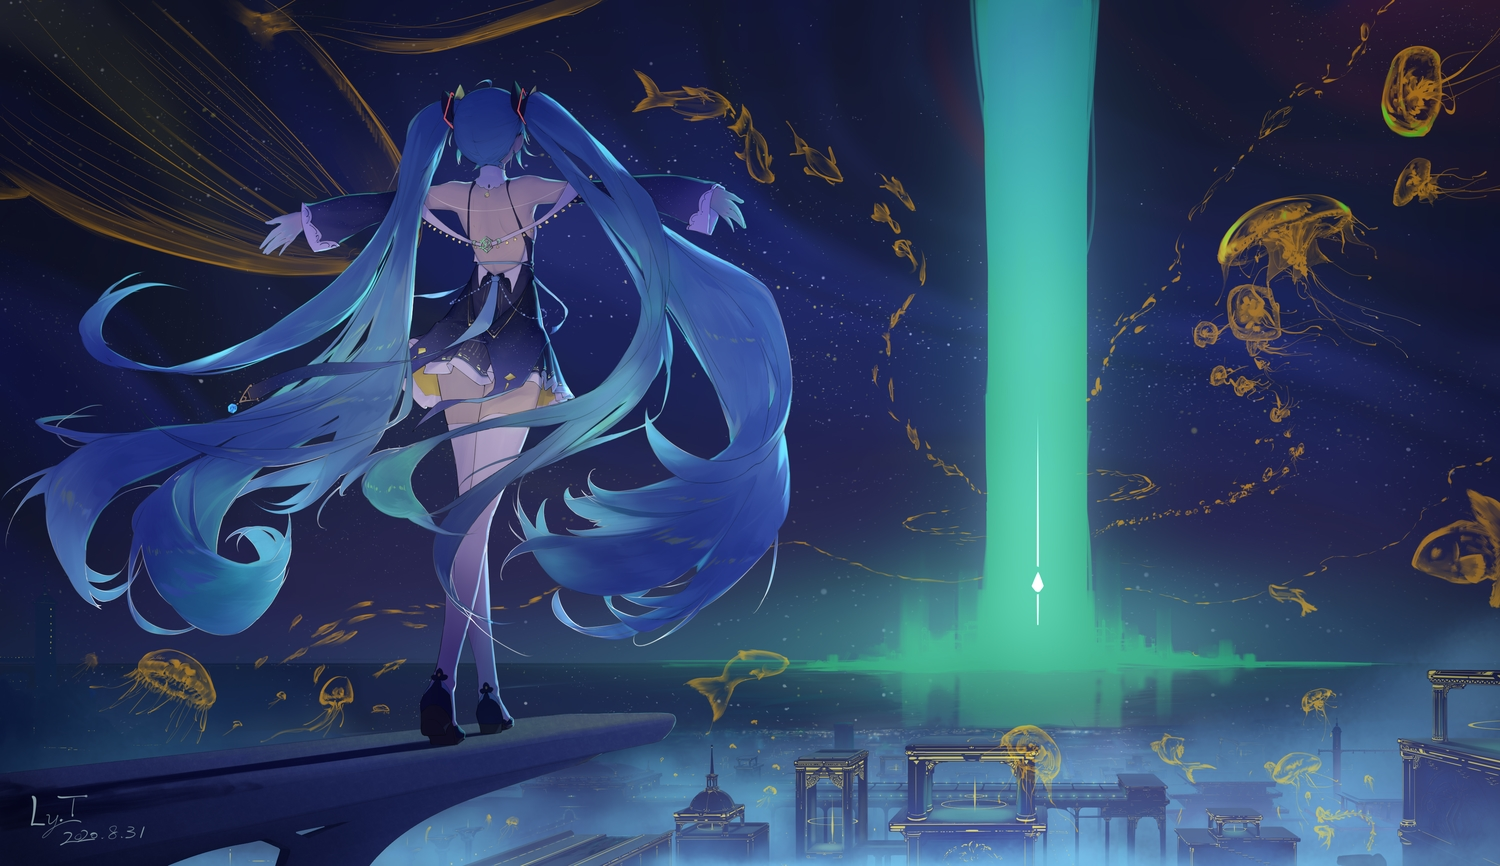 hatsune_miku ly.t signed vocaloid